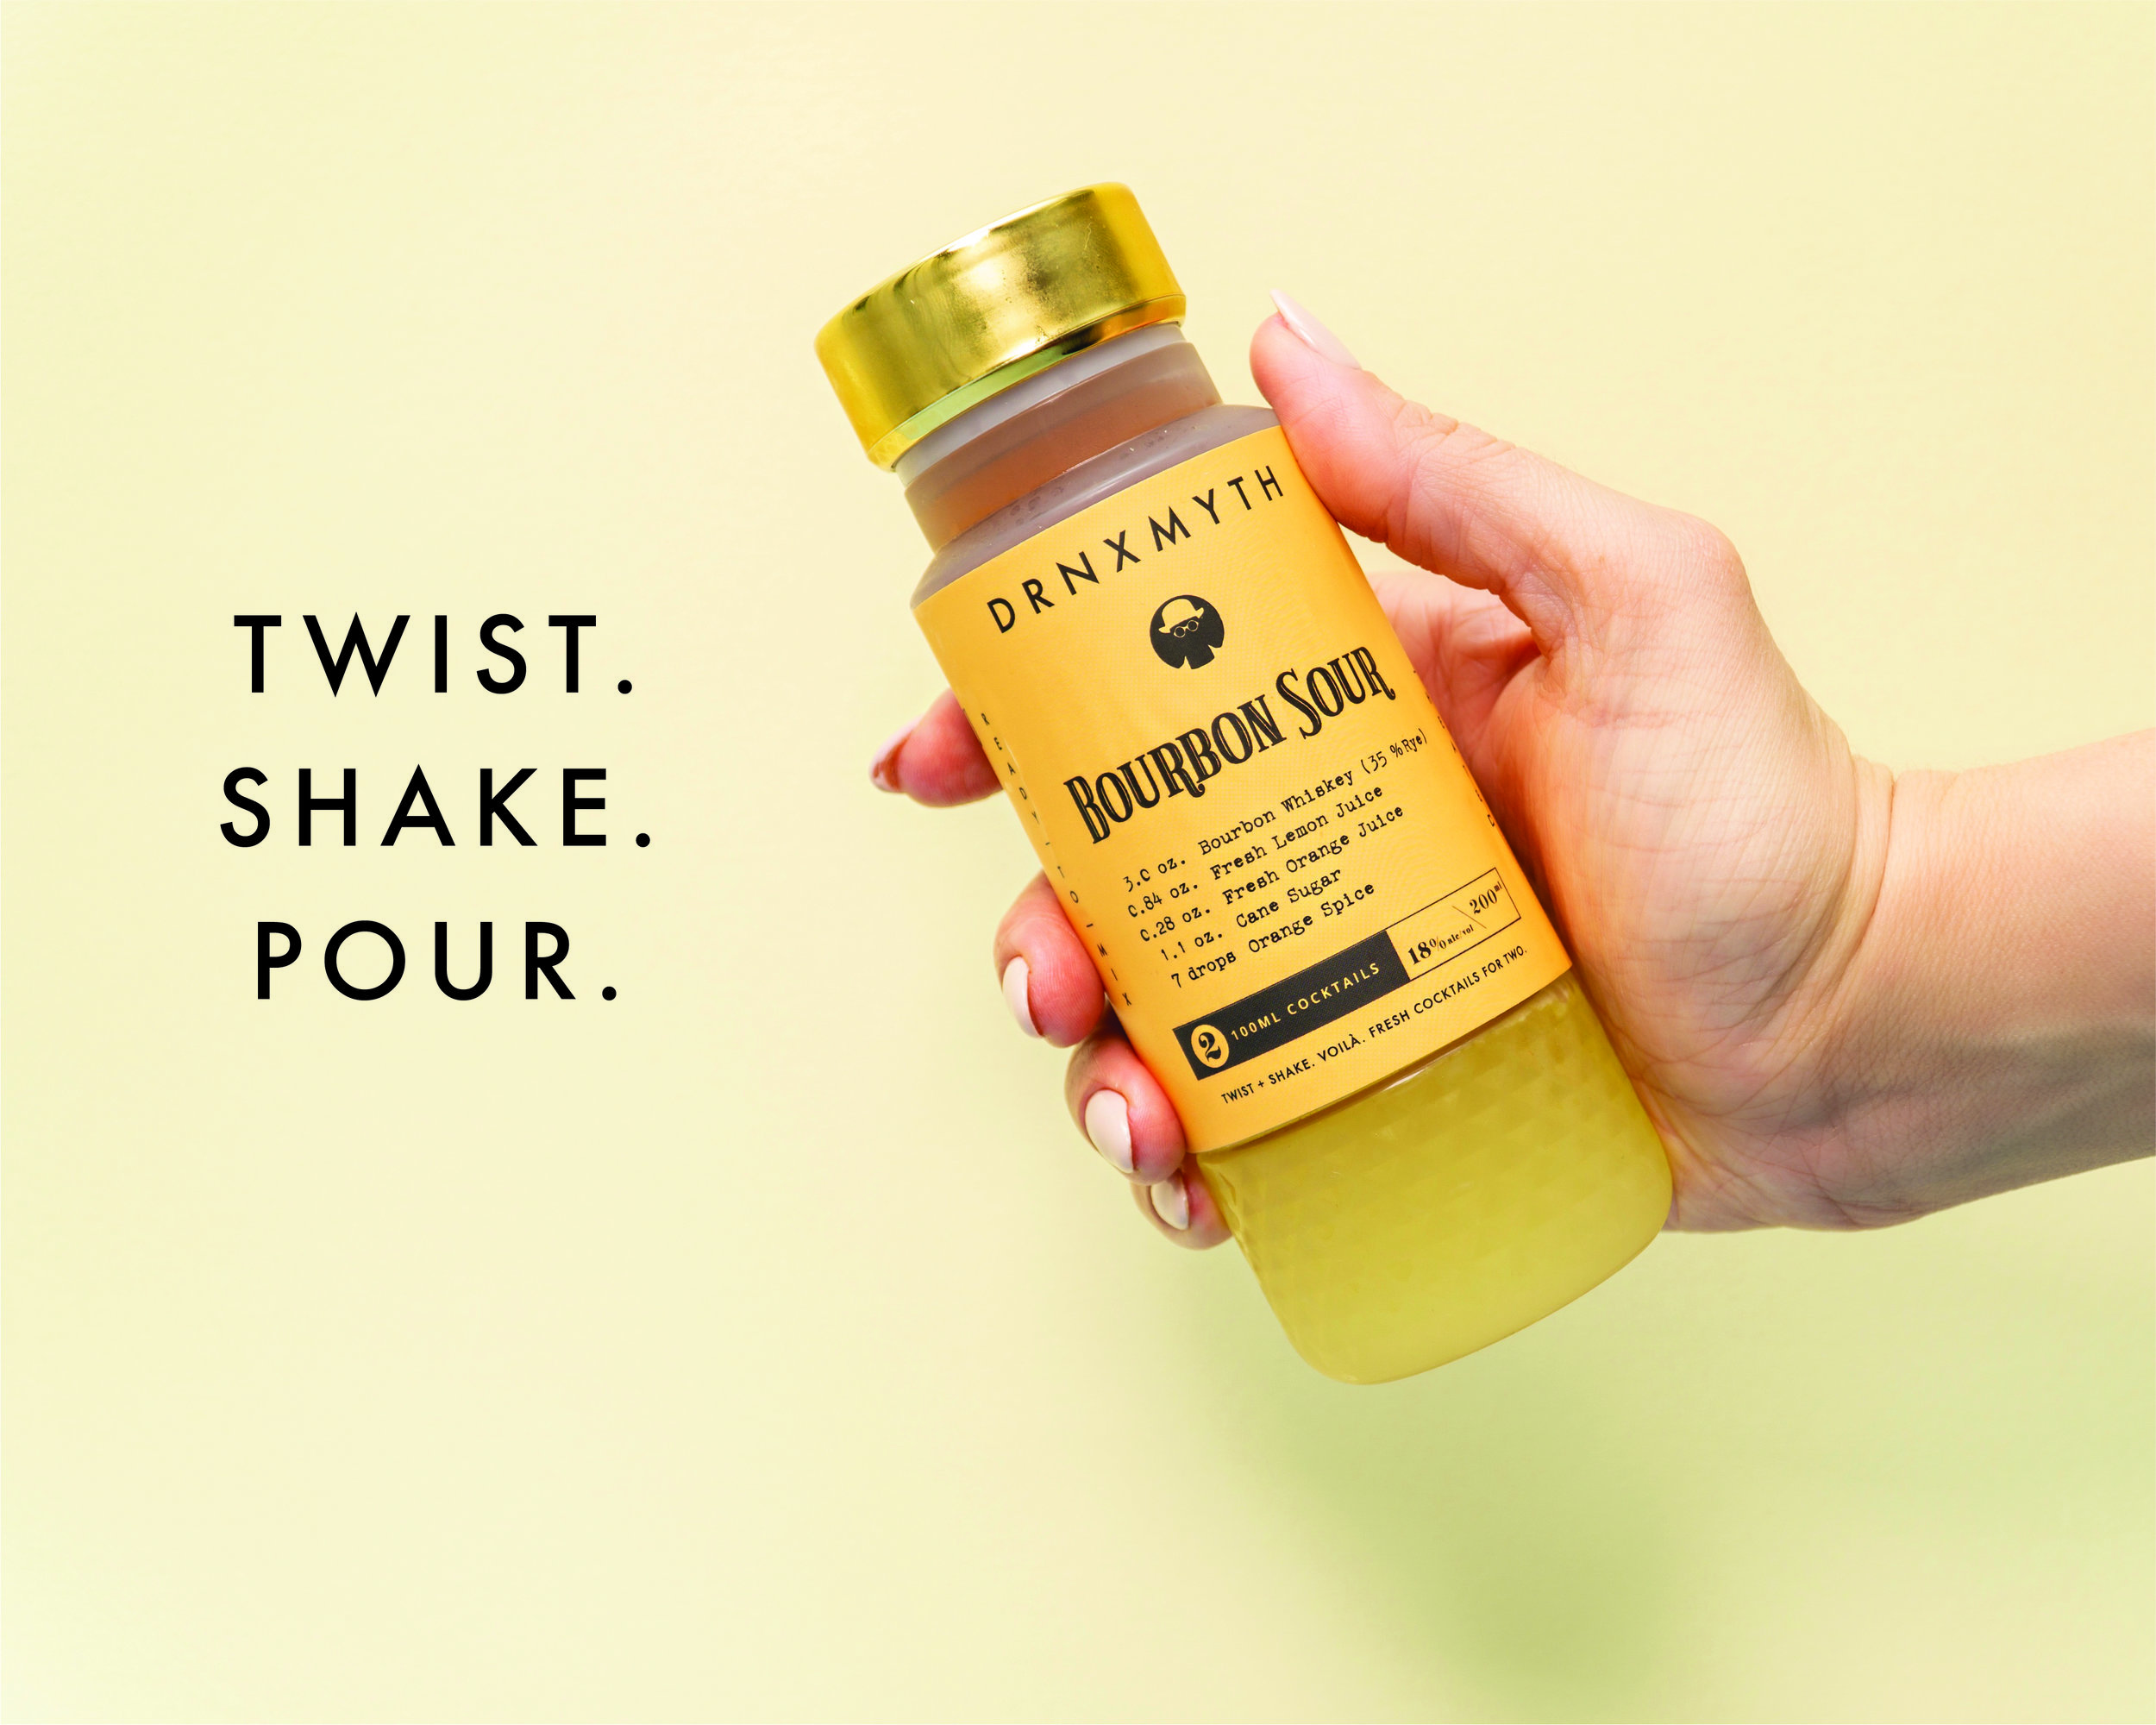 Experience the Bottle Tech. - Cold-pressed fresh ingredients, exquisite liquor, and hand-curated ingredients from the world's best bartenders. Our revolutionary bottling tech delivers fresh, un-mixed cocktails to your fridge. Twist, shake, and pour when you're ready for a drink.